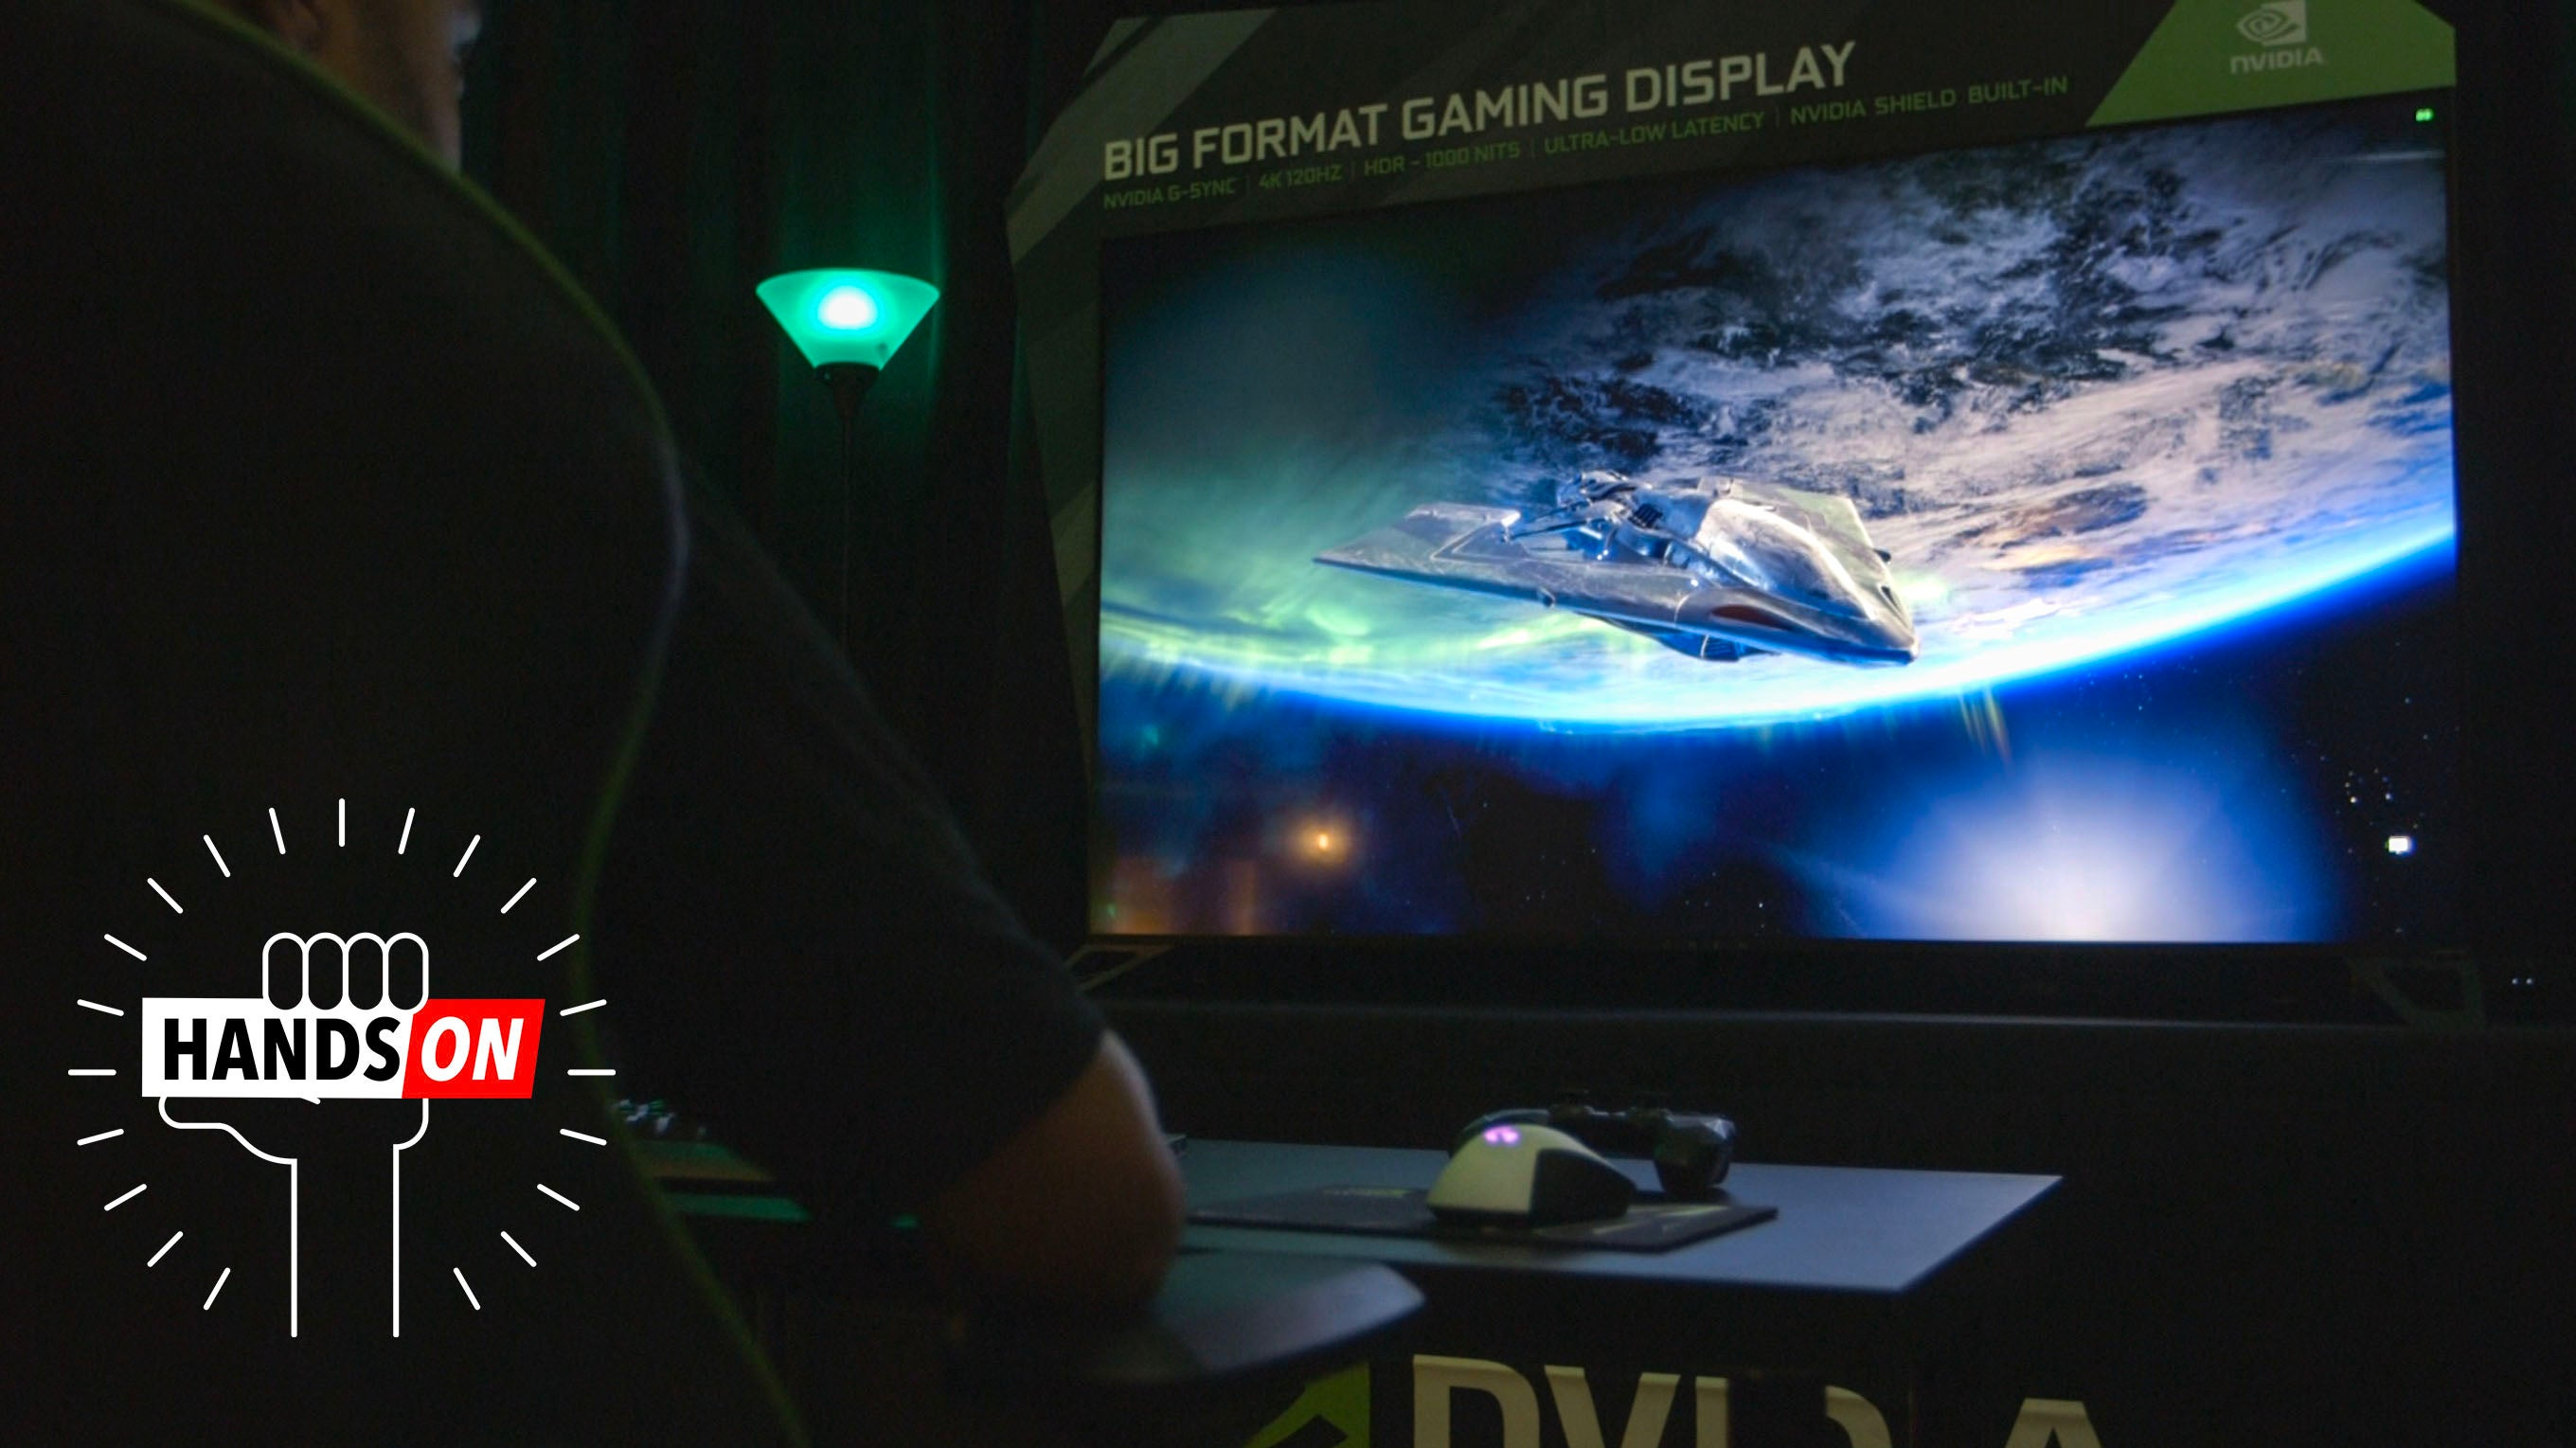 This Huge Screen Looks Like A TV, But It's Actually A Specialised Gaming Monitor